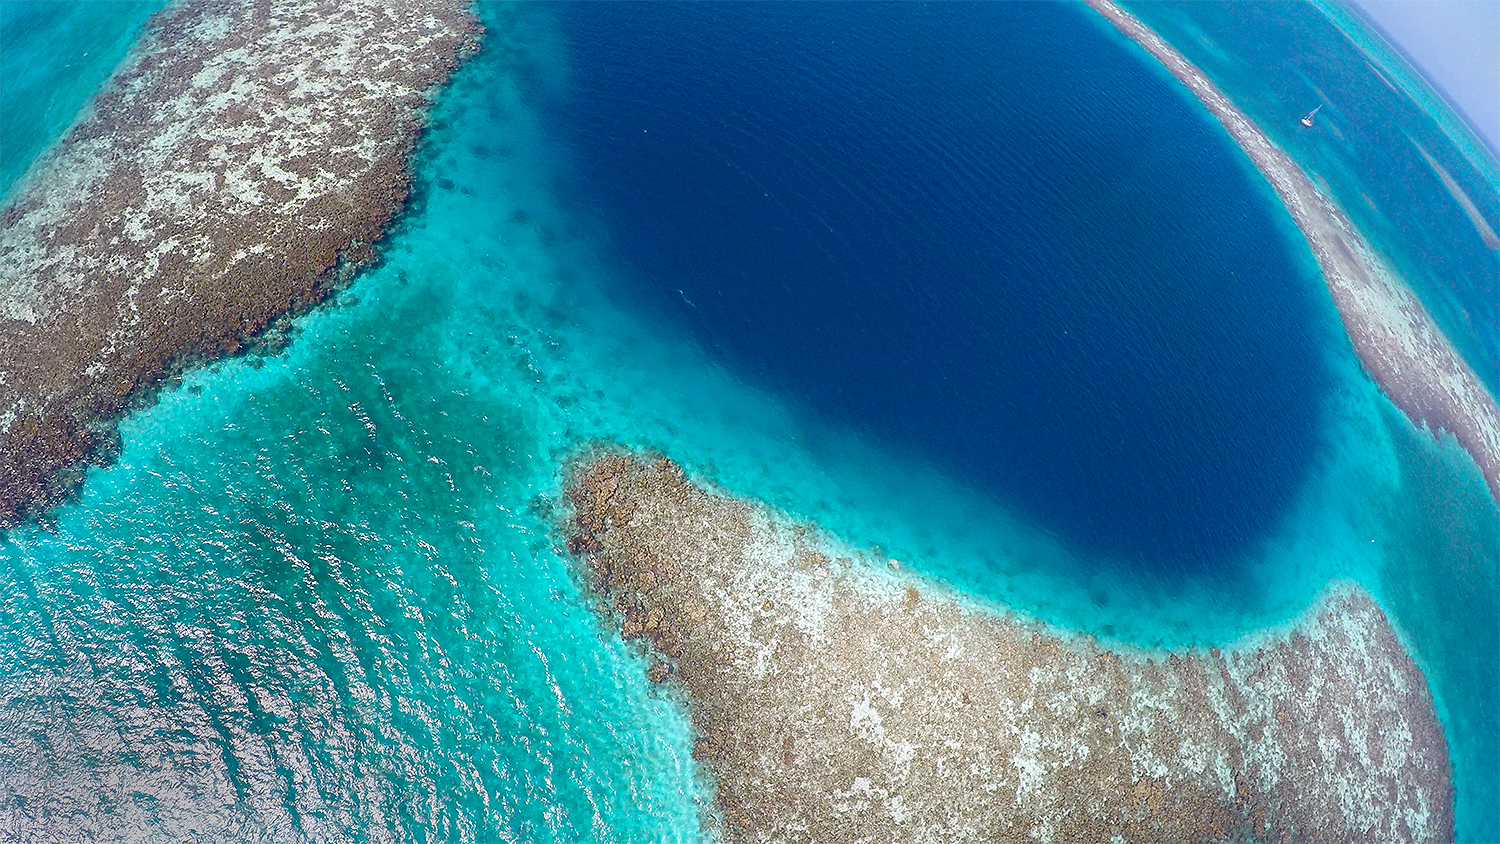 Took the drone on our trip to the Blue Hole and risked it in the gusty wind to get this shot.